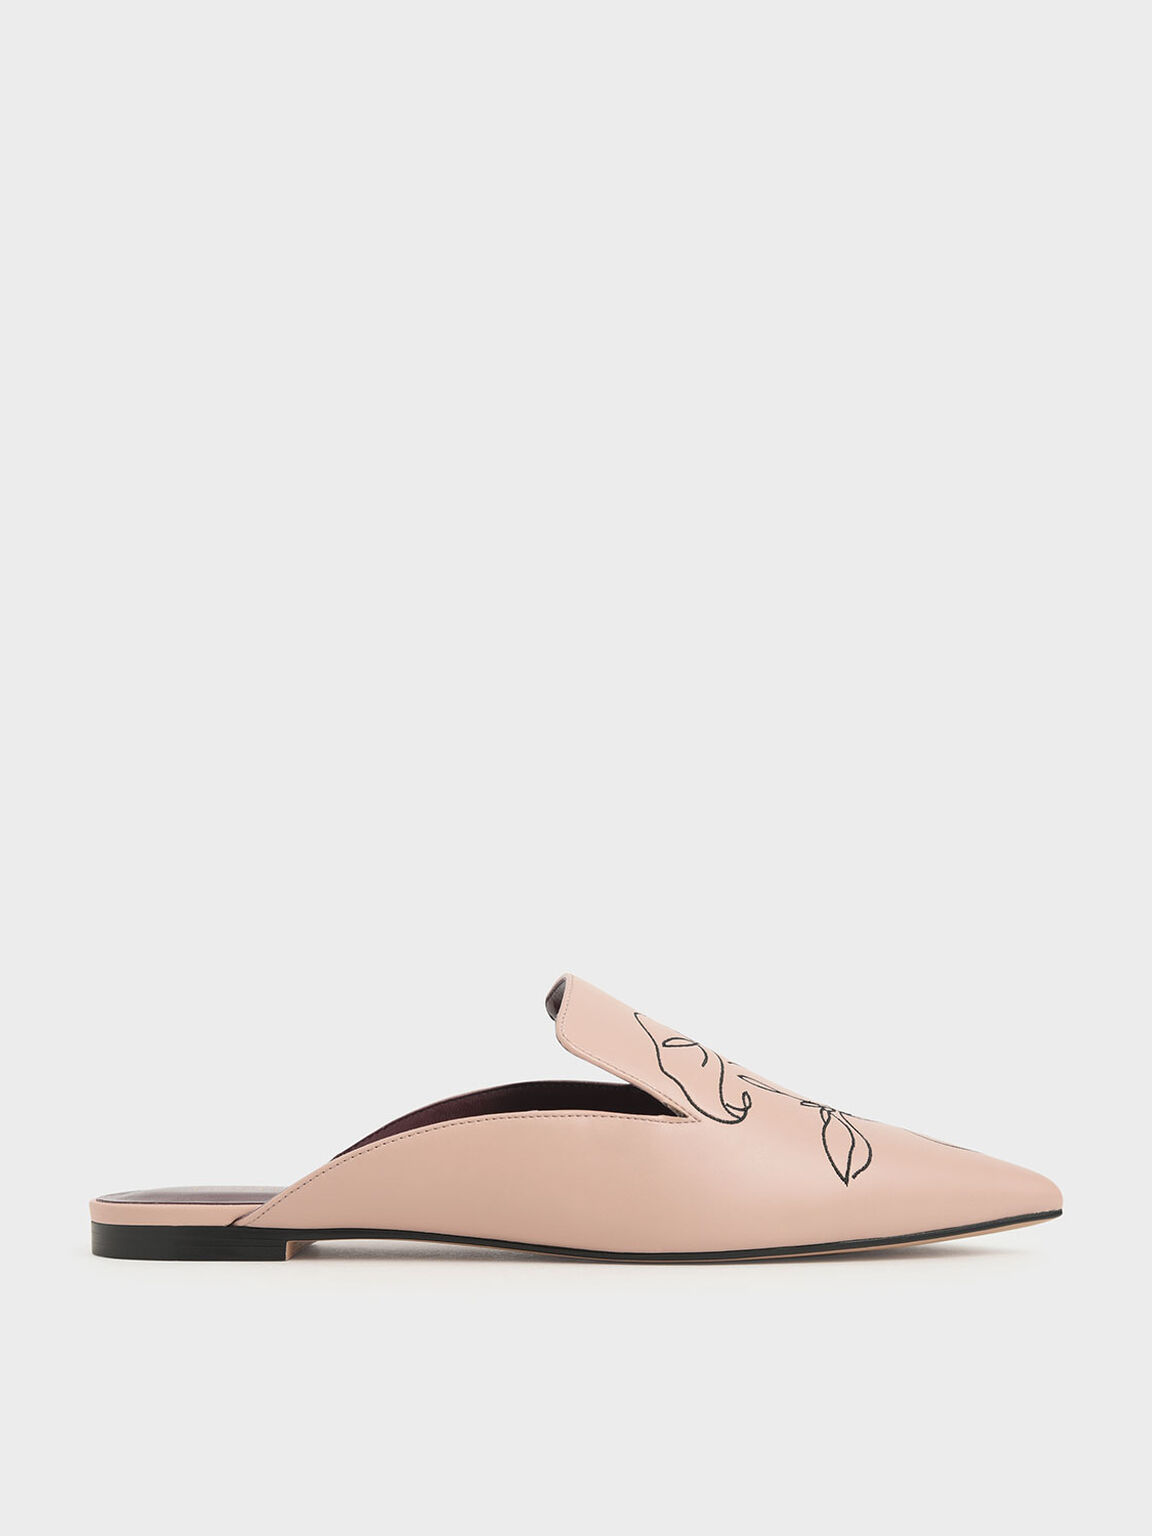 Floral Embroidered Pointed Toe Mules, Nude, hi-res